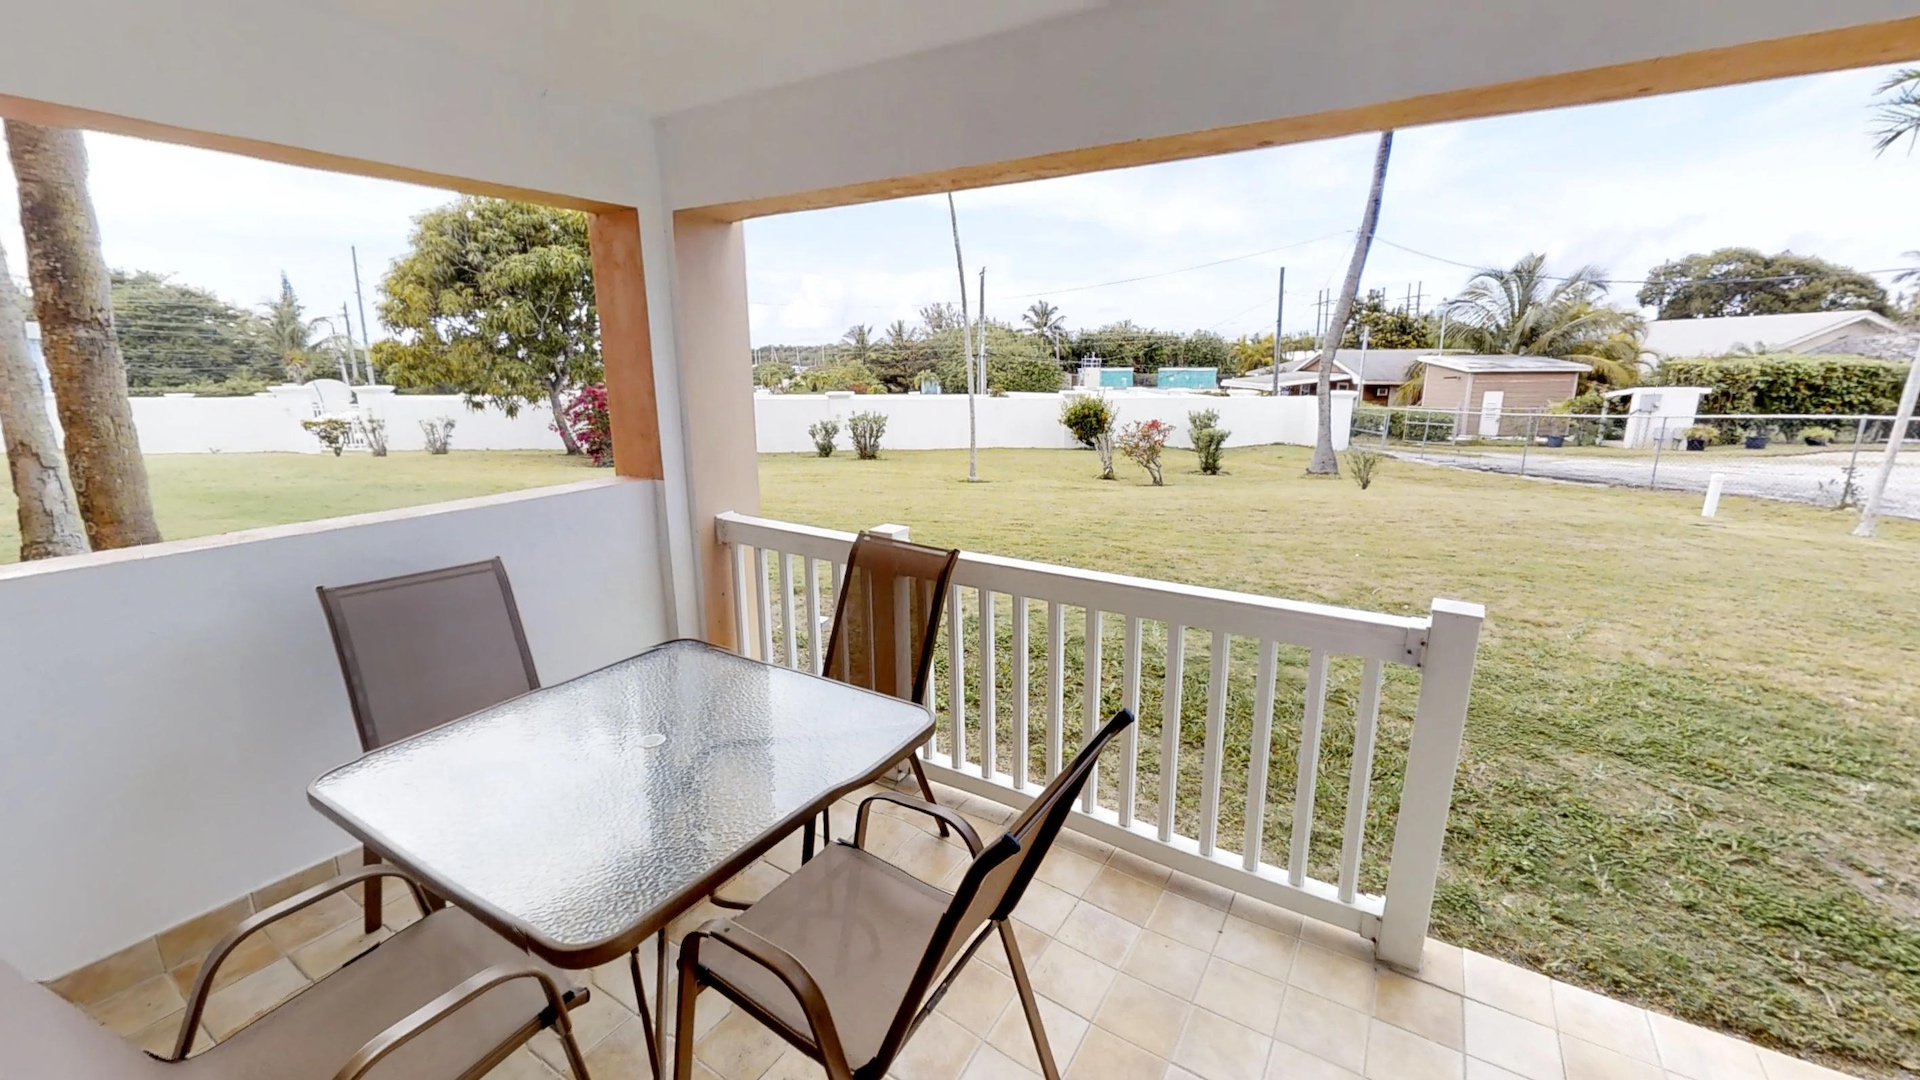 Condo for sale in Marsh Harbour